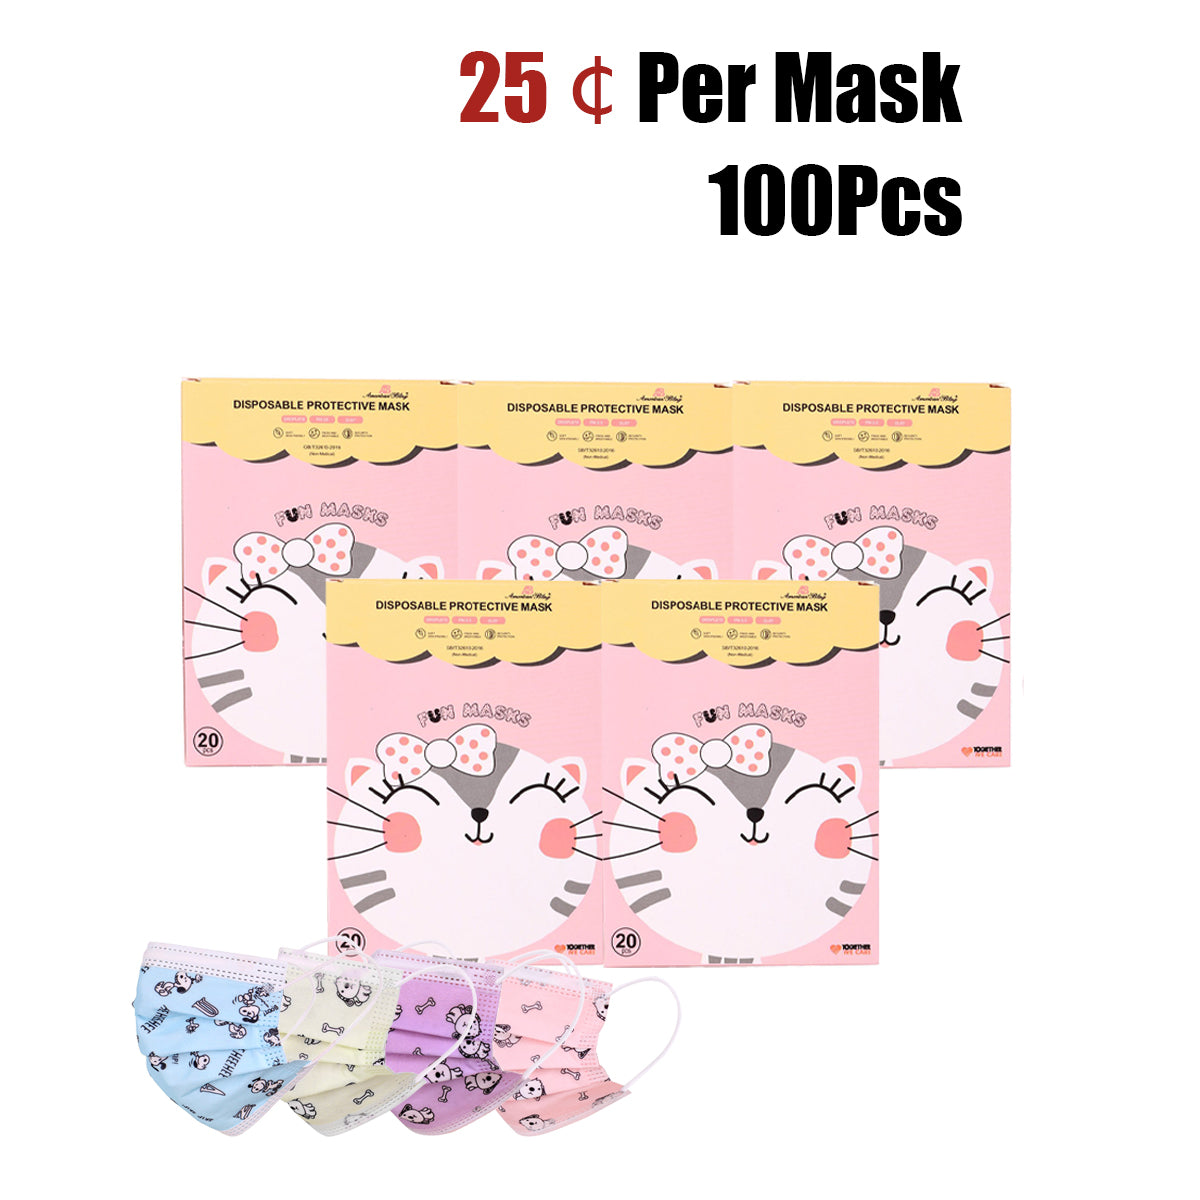 100Pcs American Bling Kids 3 Ply Disposable Assorted Color Dog & Bone Print Face Mask  (20Pcs/Box)